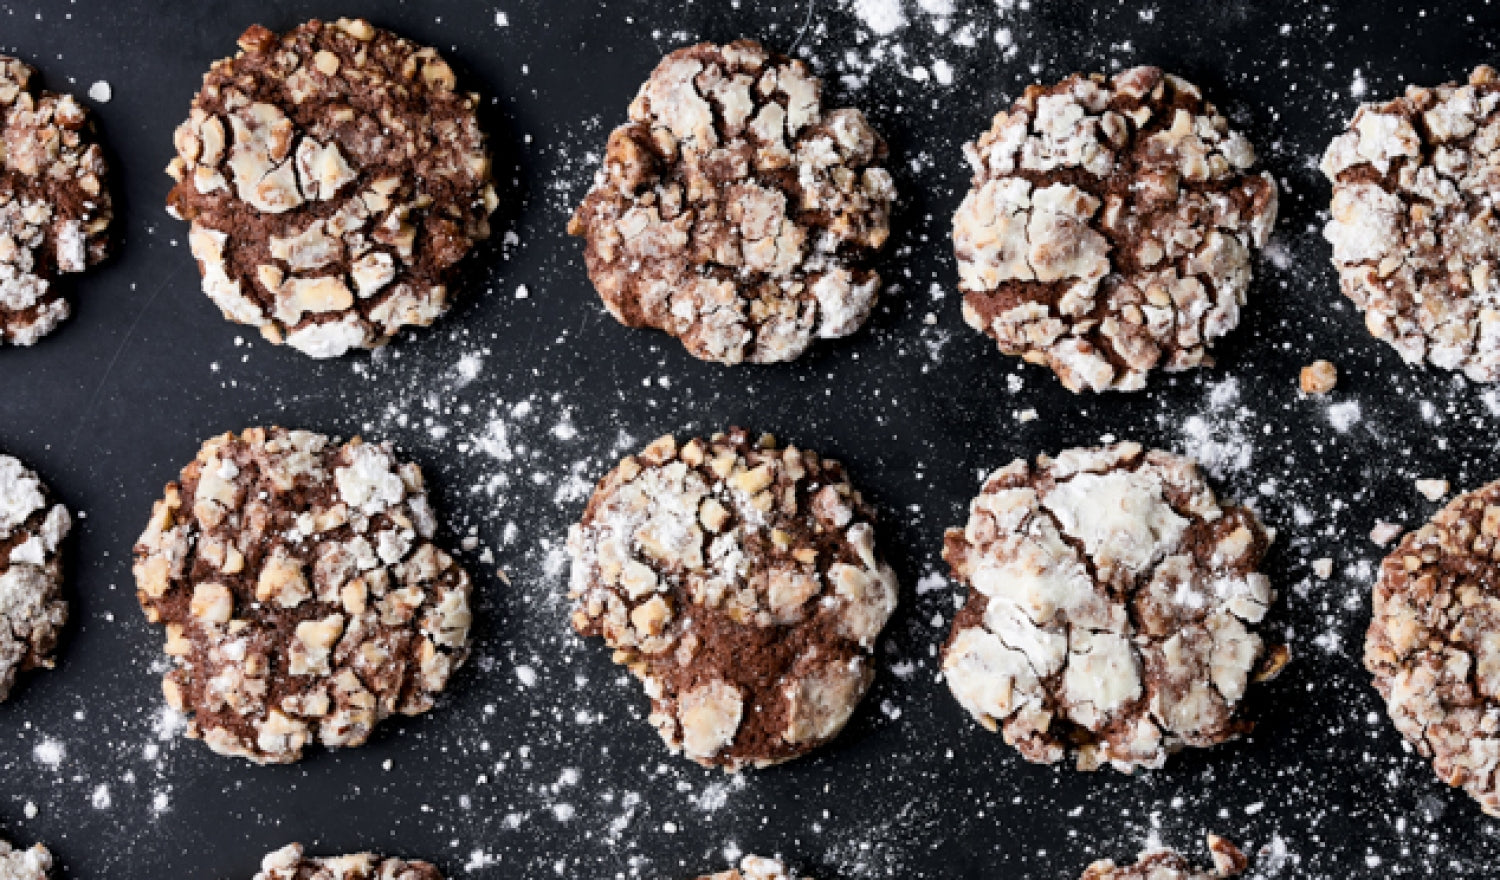 Ottolenghi & Goh's Chocolate, Banana And Pecan Cookies